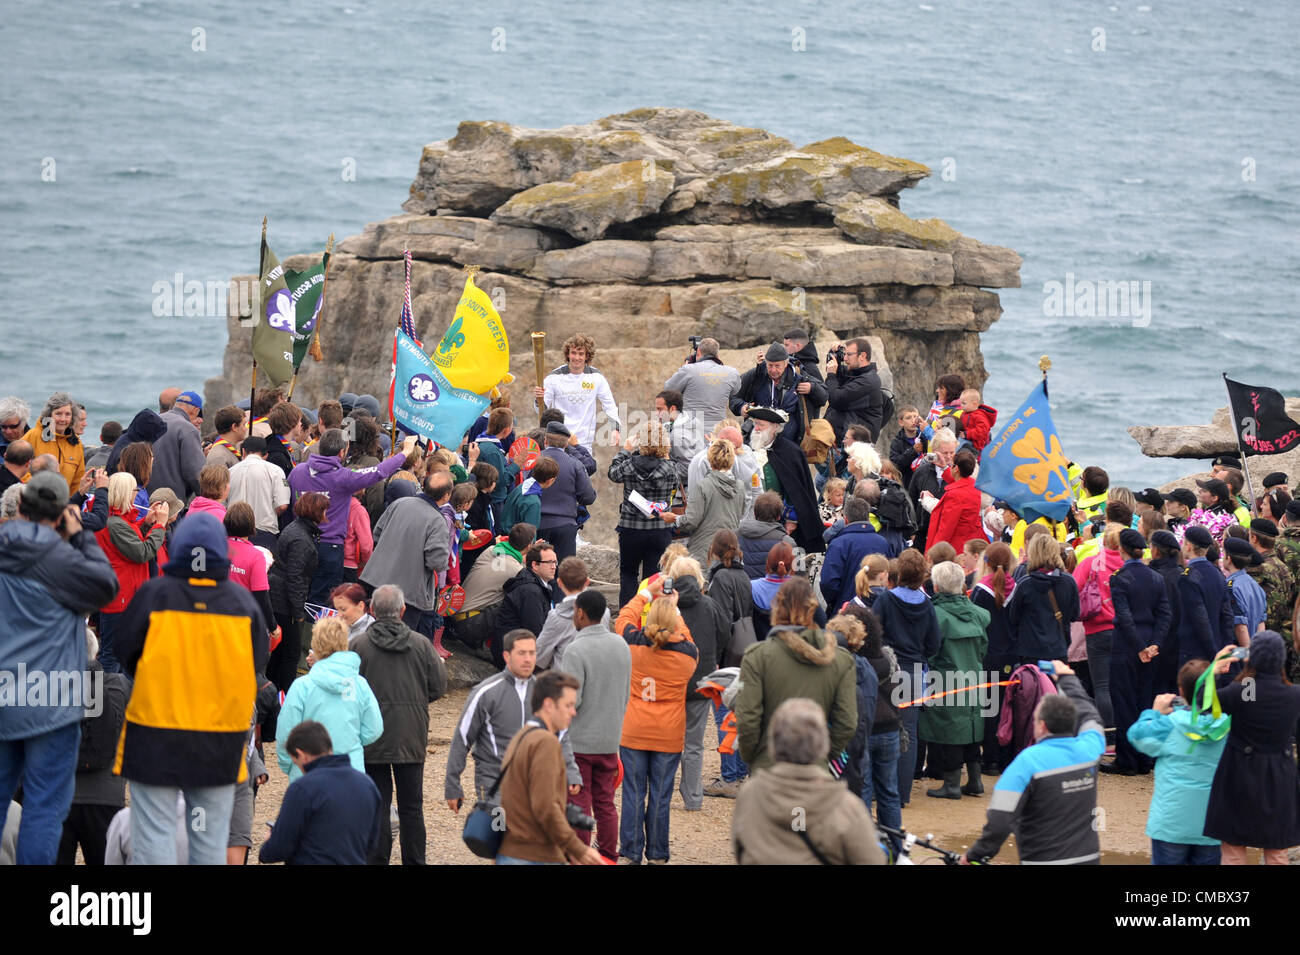 Day 56 of the torch relay around the UK…Pulpit Rock at Portland Bill, Dorset this morning as the first torch was - Stock Image